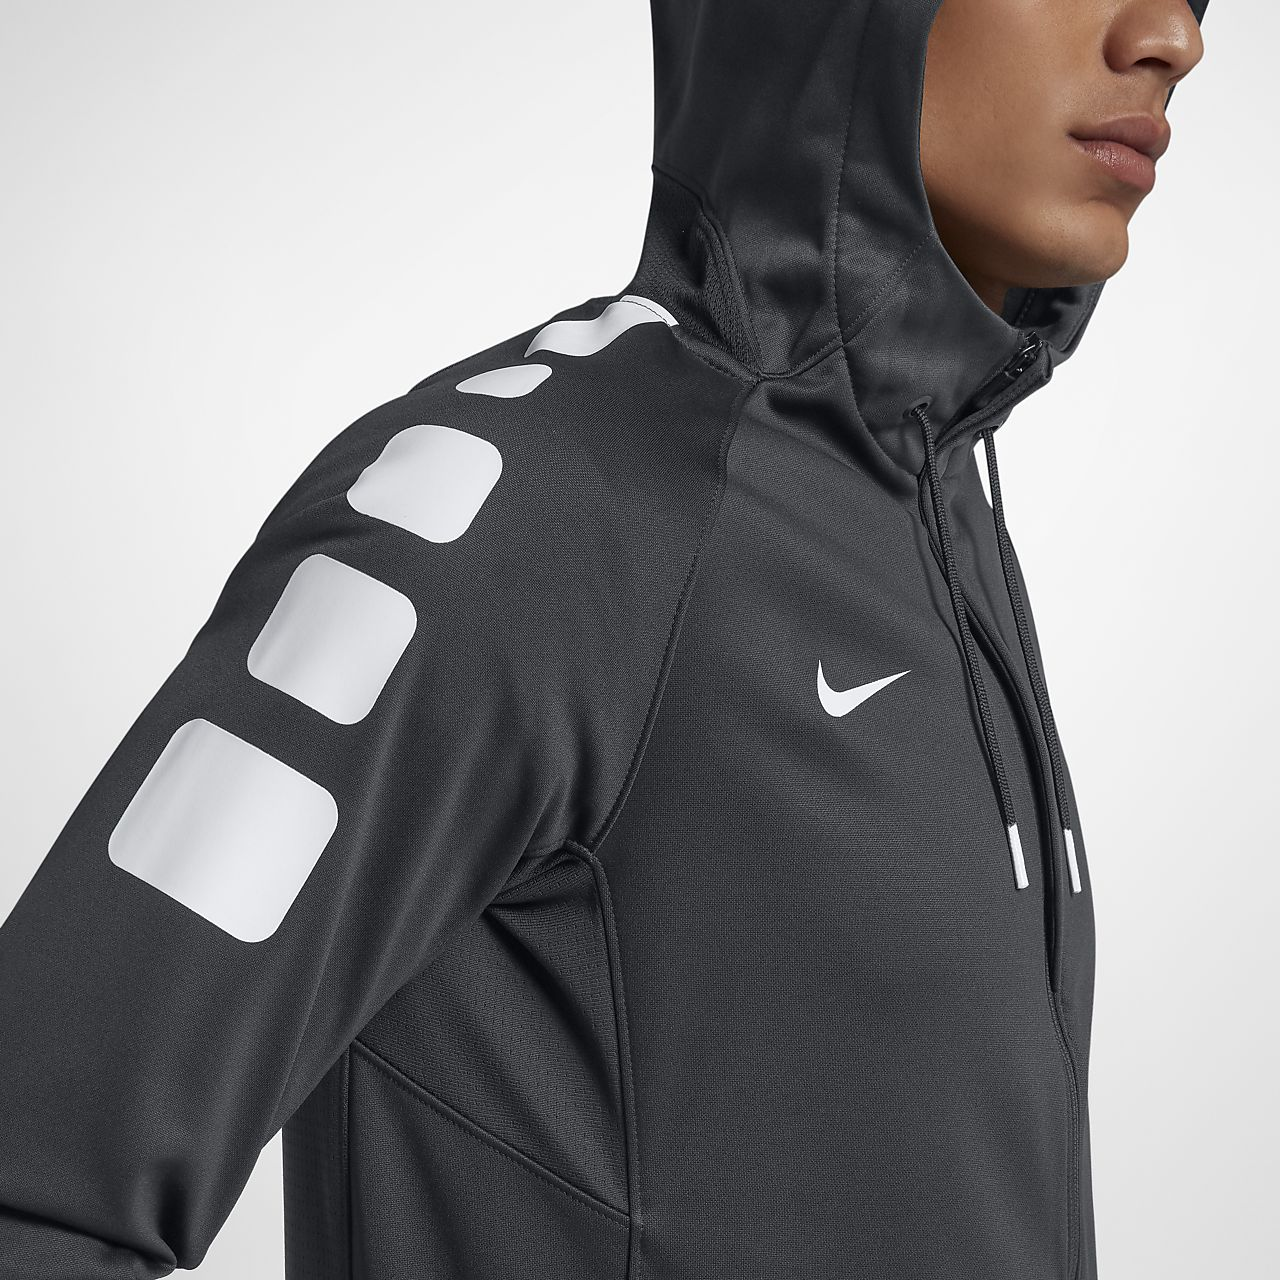 3d24d05cca0d Nike Therma Elite Men s Basketball Hoodie. Nike.com